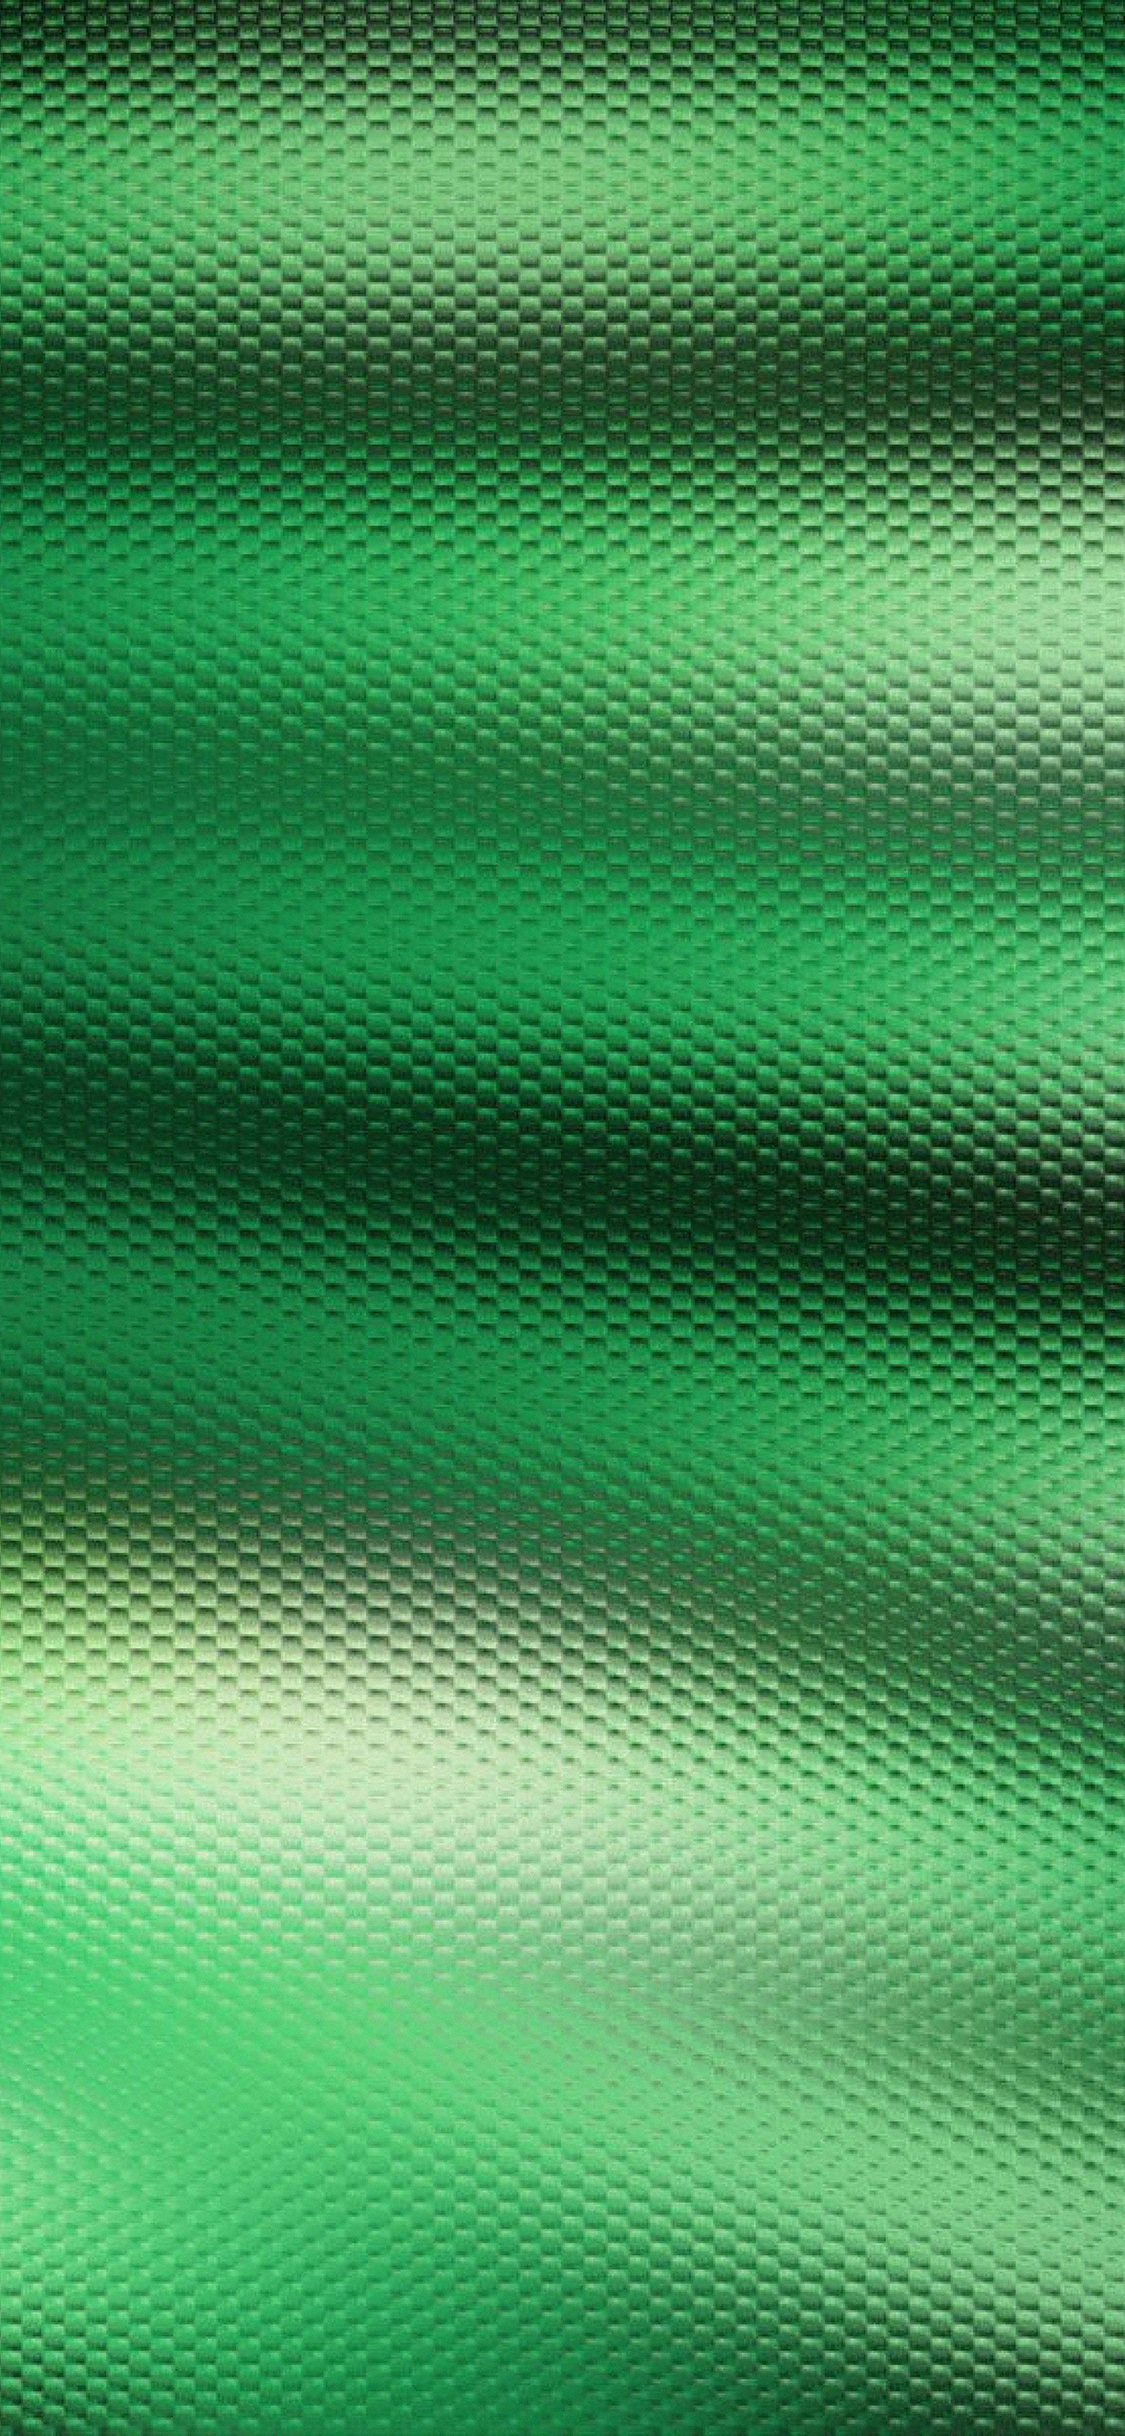 iPhoneXpapers.com-Apple-iPhone-wallpaper-vh00-fabric-texture-green-pattern